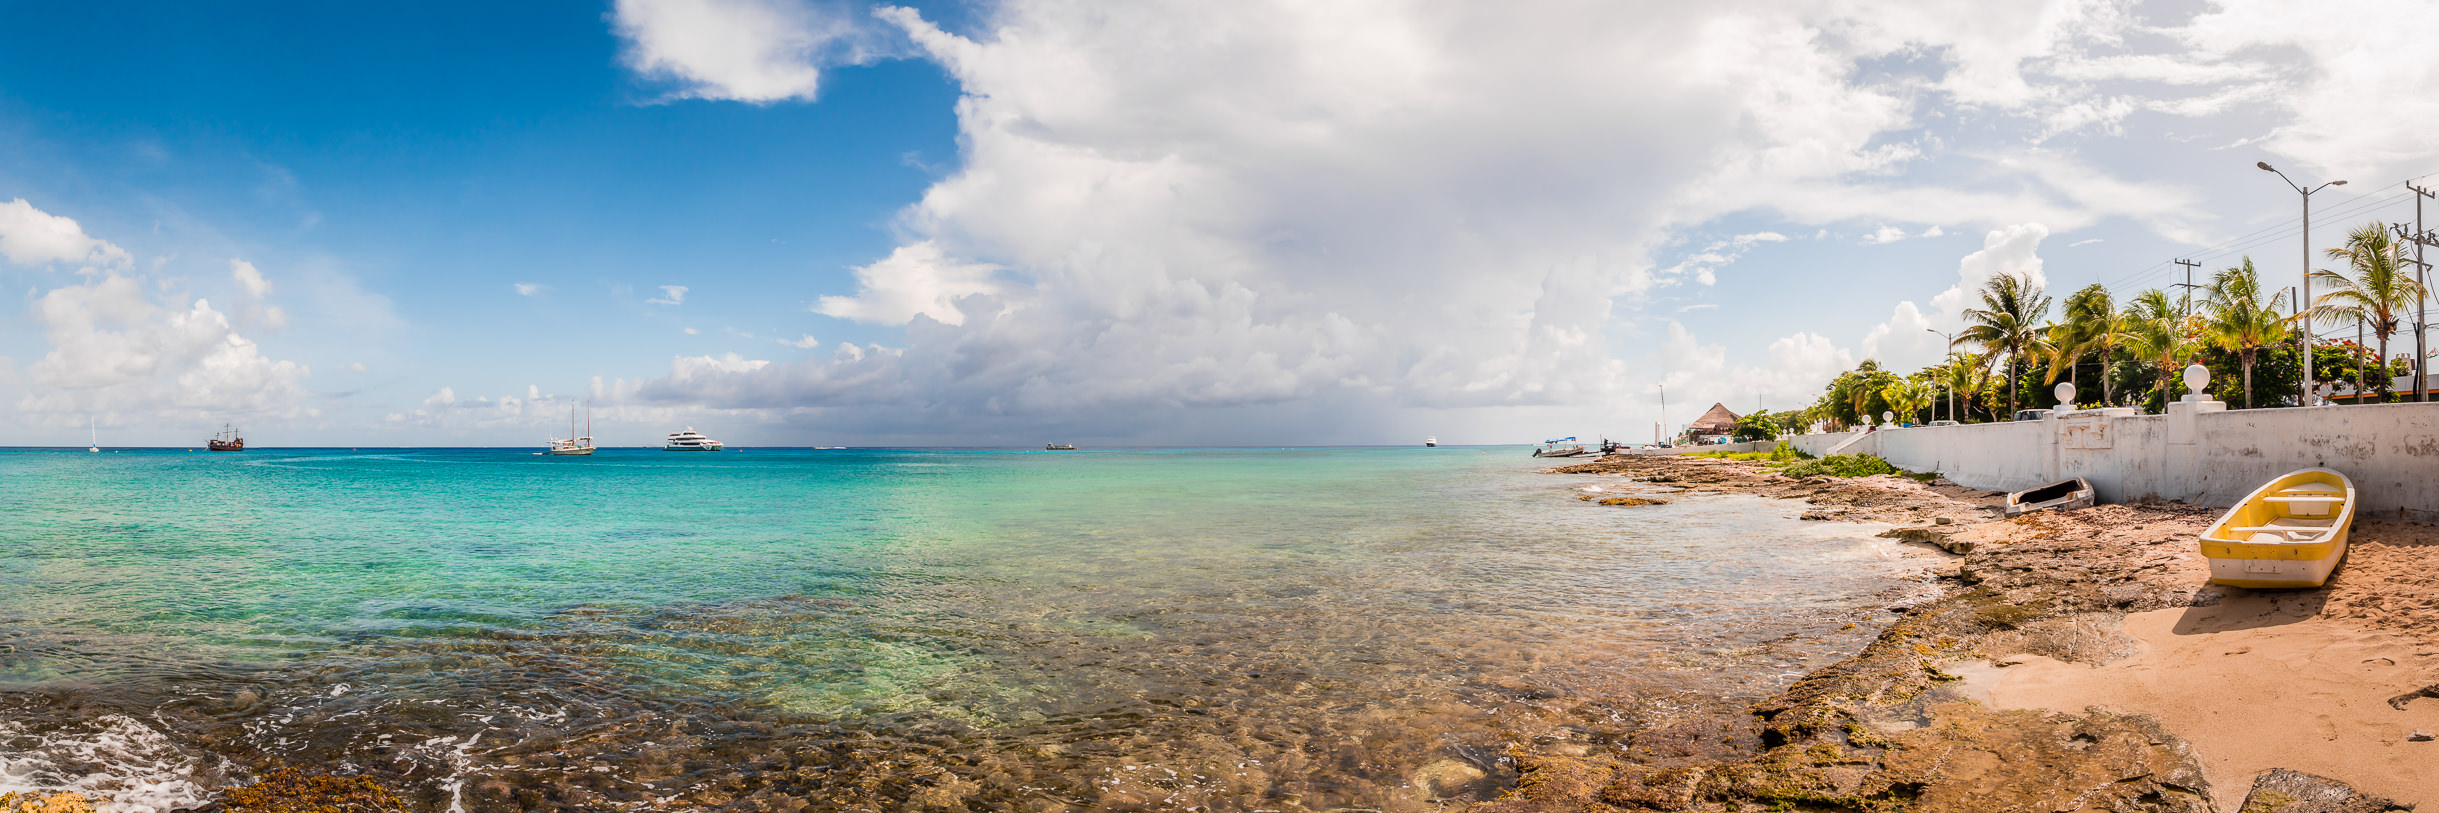 The Malecón stretches into the distance in San Miguel,Cozumel, Mexico.